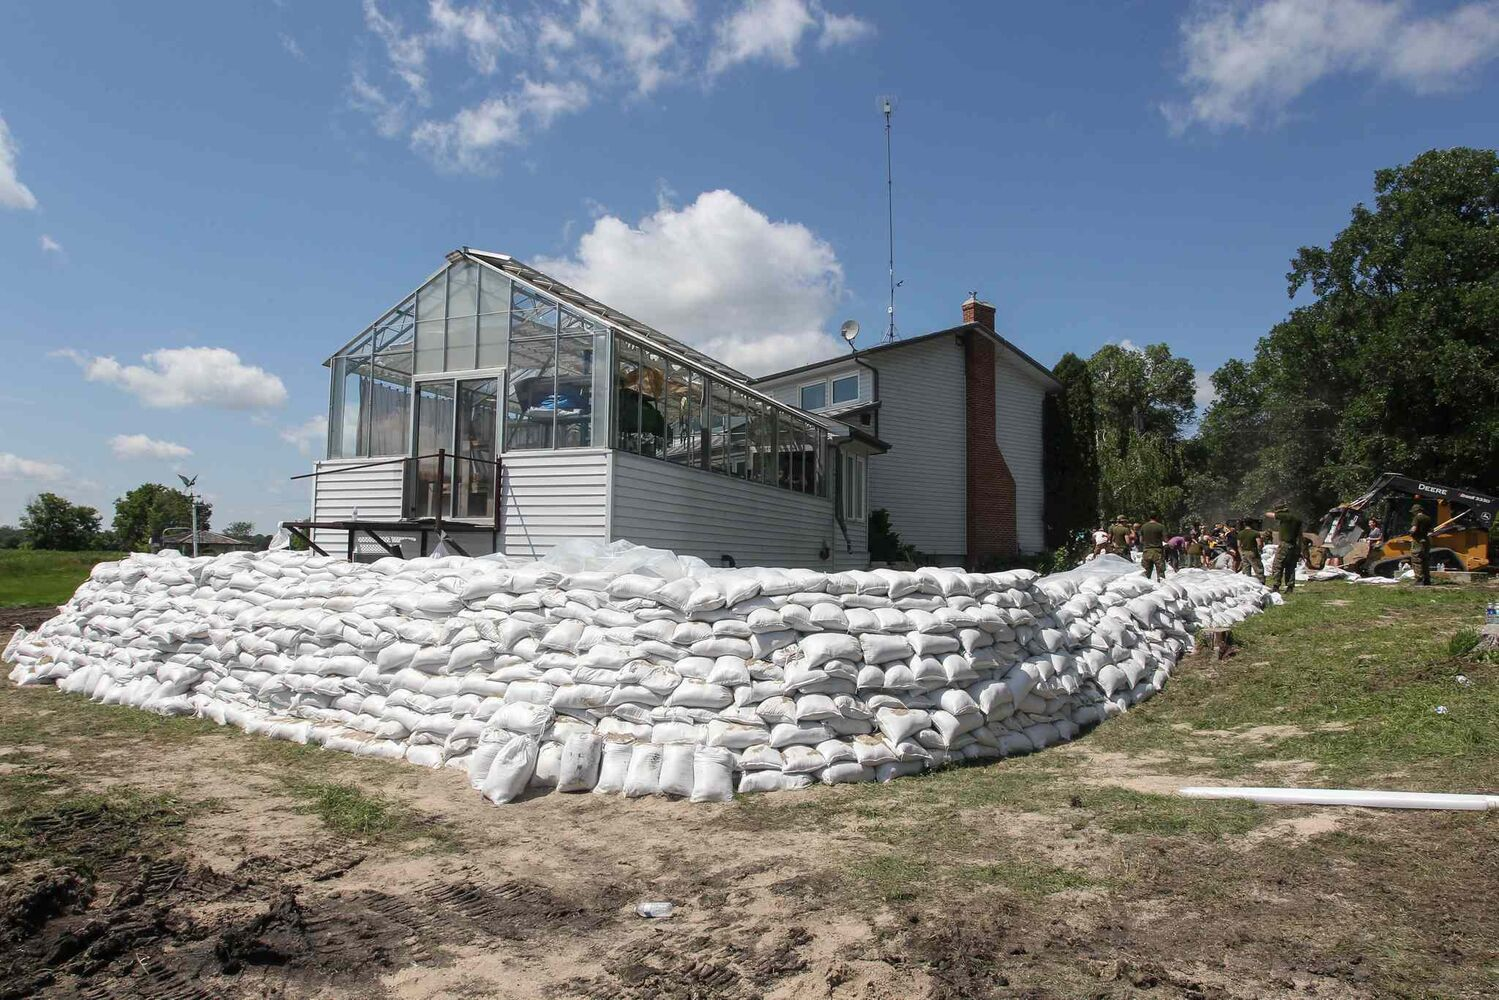 Kevin Van Camp's home with its protective sandbag walls near St. Francois Xavier Sunday afternoon.  (Mike Deal / Winnipeg Free Press)